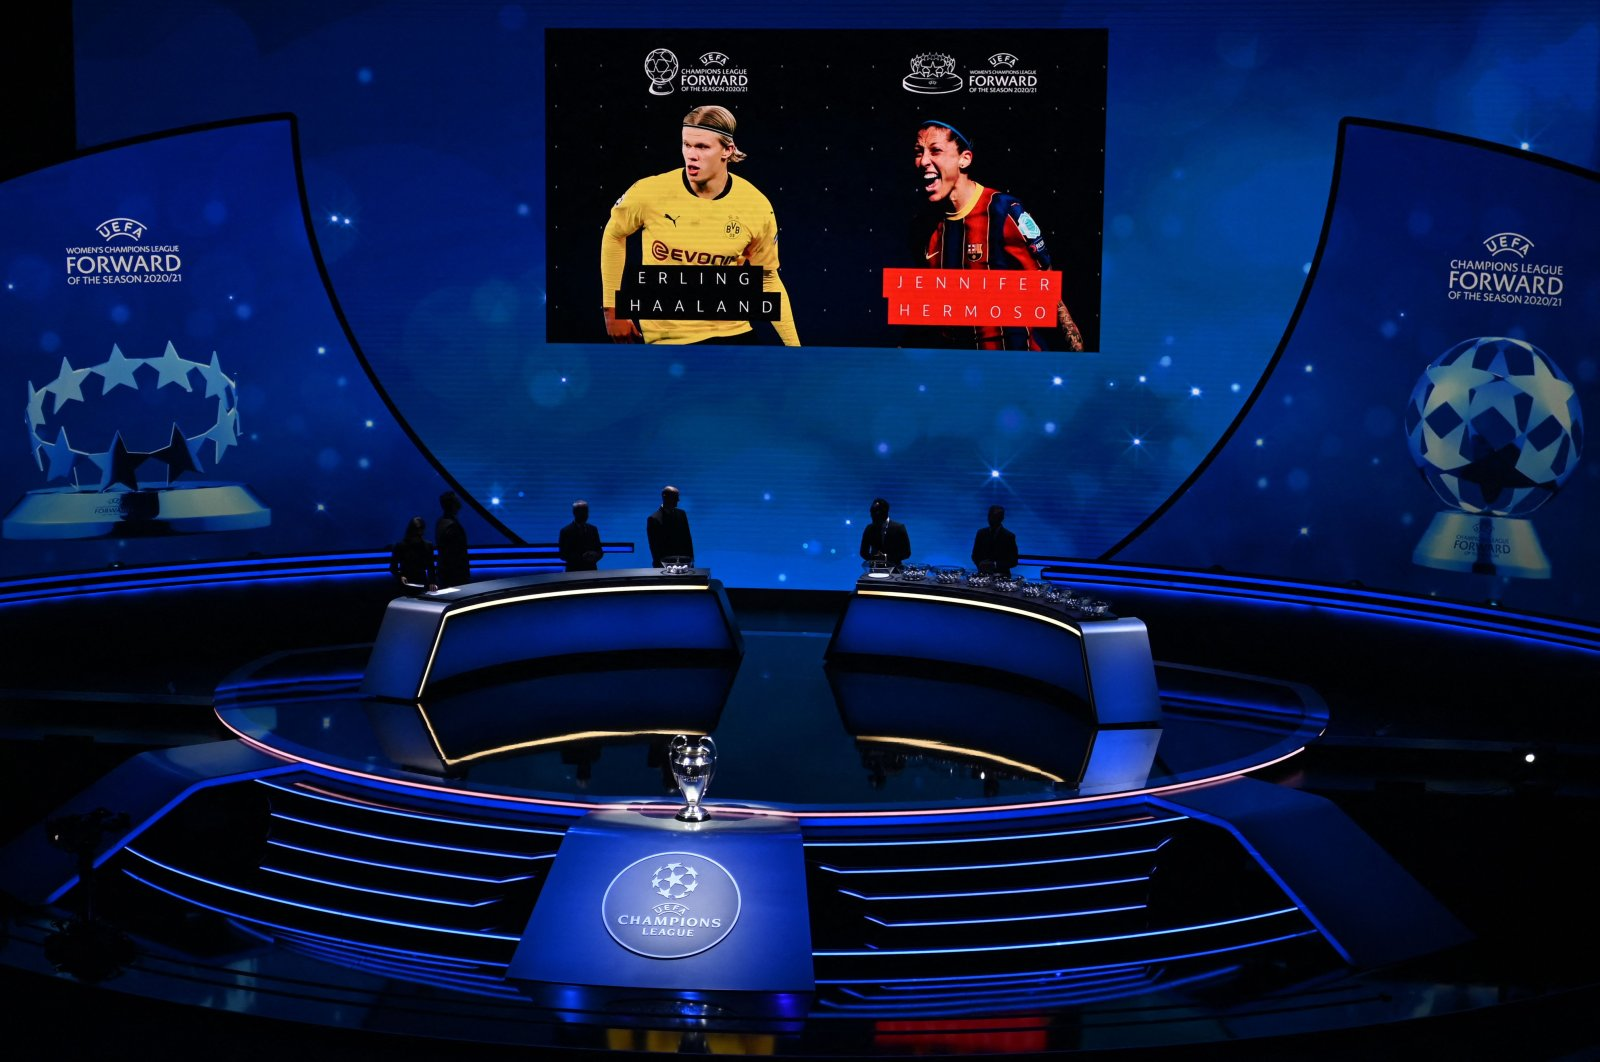 The best forward of the year award goes to Dortmund's Norwegian forward Erling Braut Haaland and Barcelona's Spanish forward Jennifer Hermoso during the draw for the UEFA Champions League football tournament in Istanbul, Turkey, Aug. 26, 2021. (Photo by OZAN KOSE via AFP)